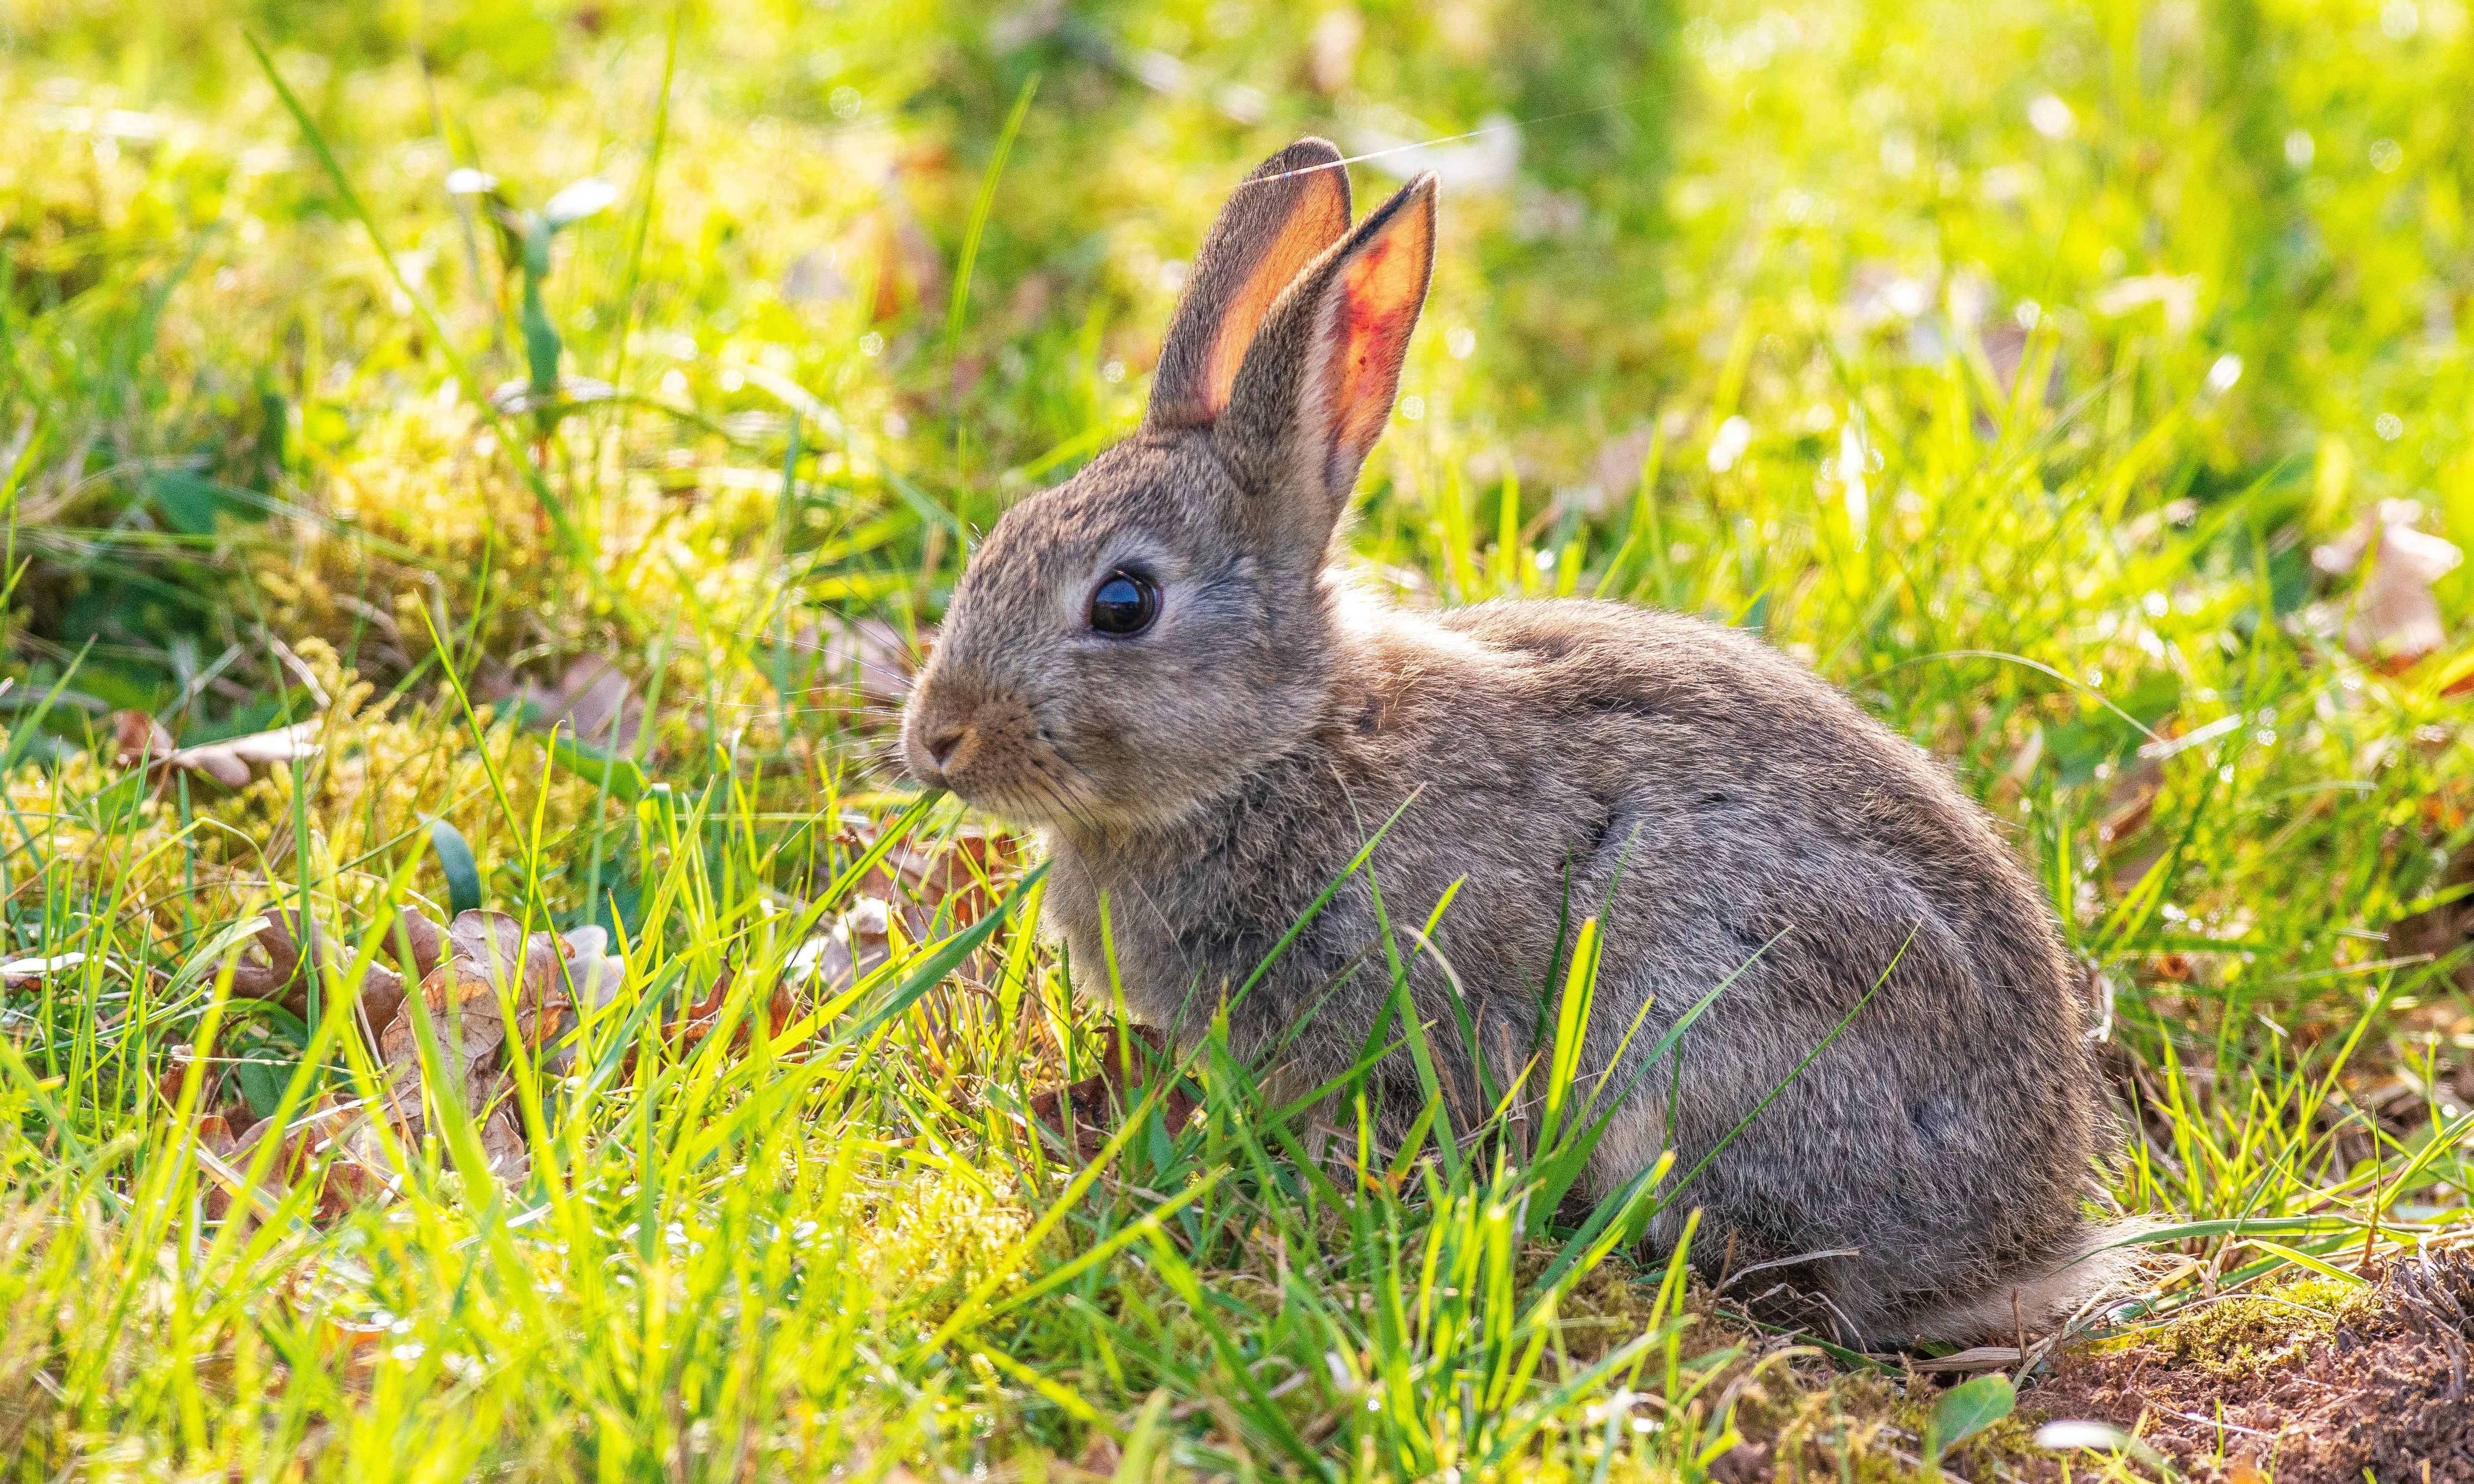 Burrowing down to carbon date 'Roman' rabbits